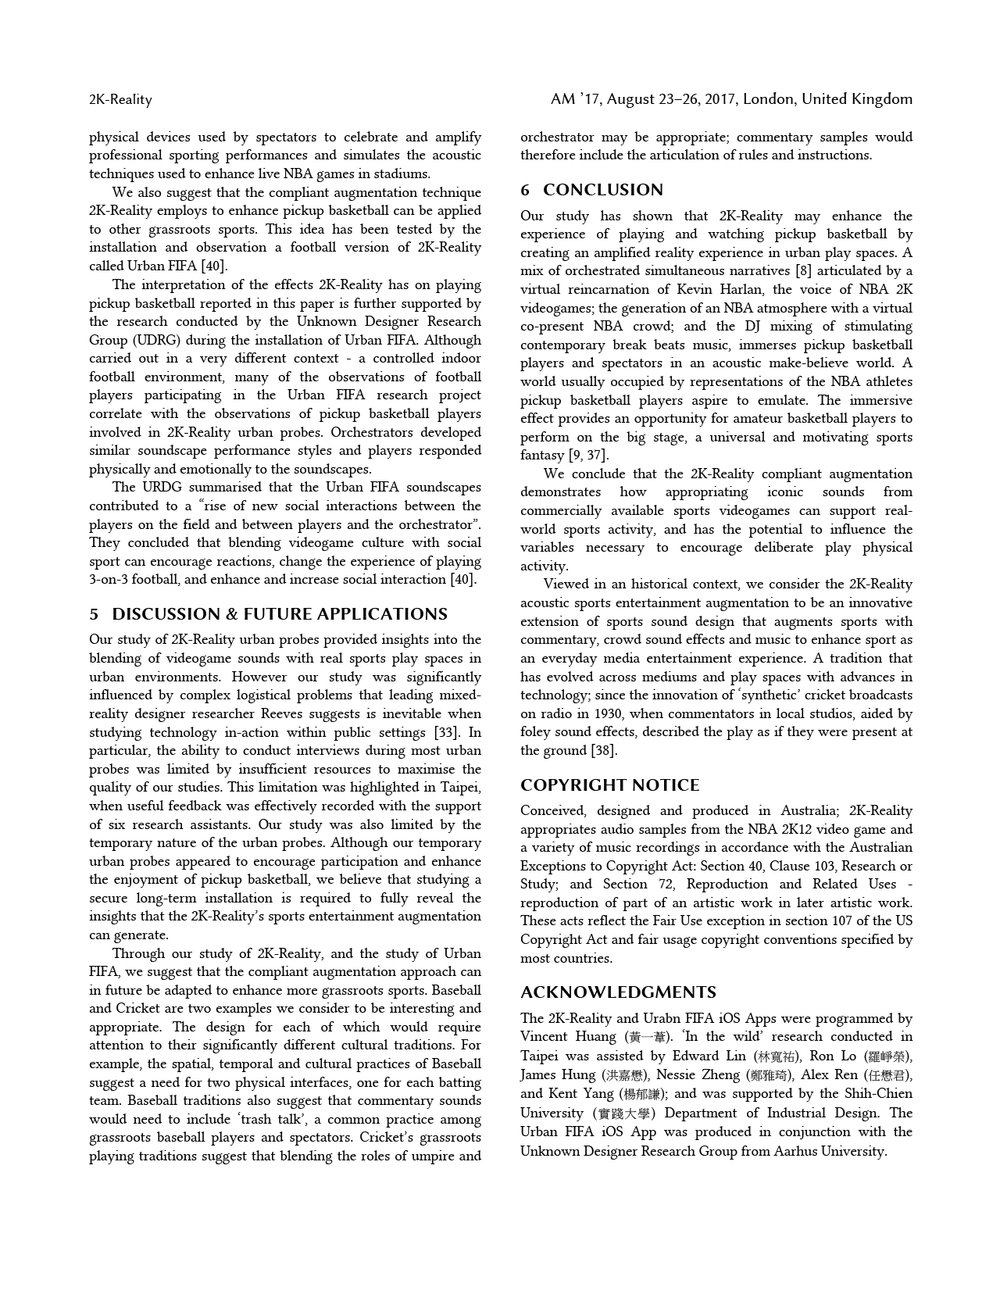 2K-Reality_AudioMostly'17 Paper-7.jpg